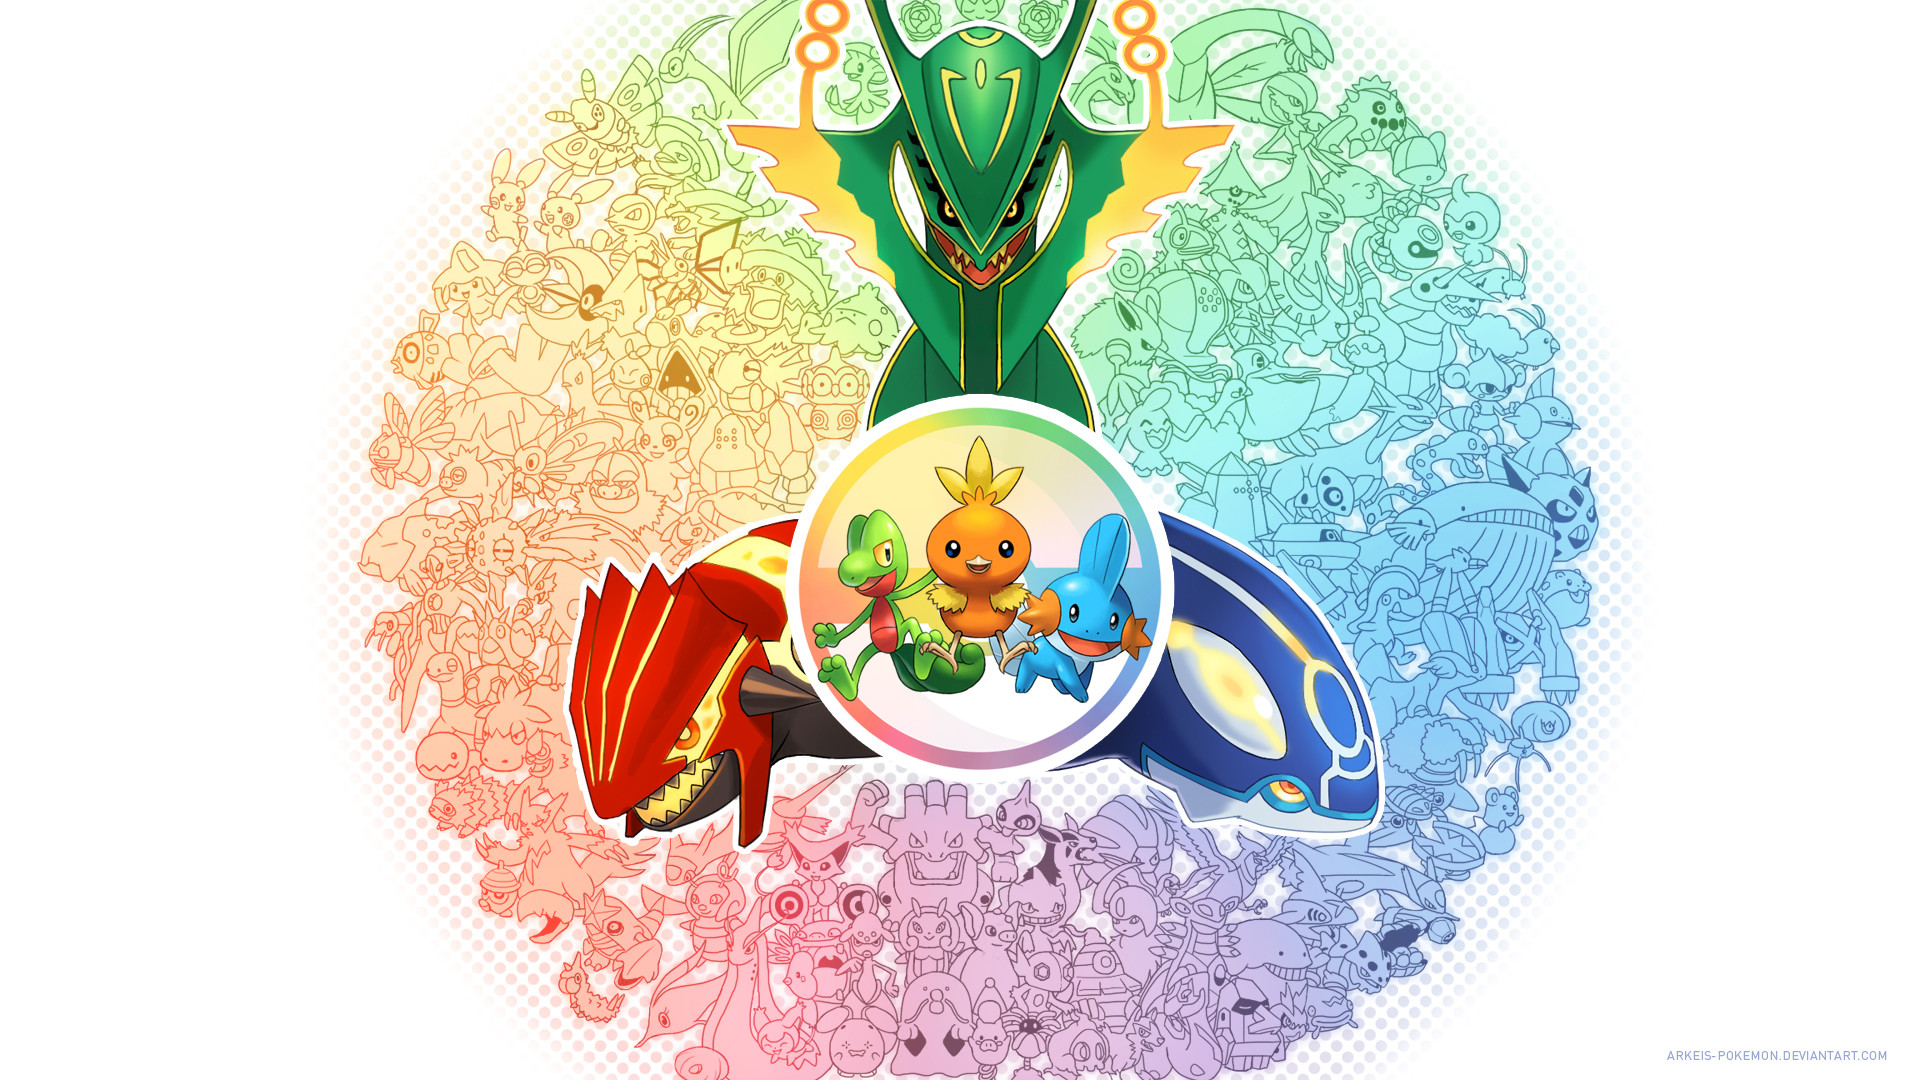 HD Quality Images of Pokemon » #694891092 px